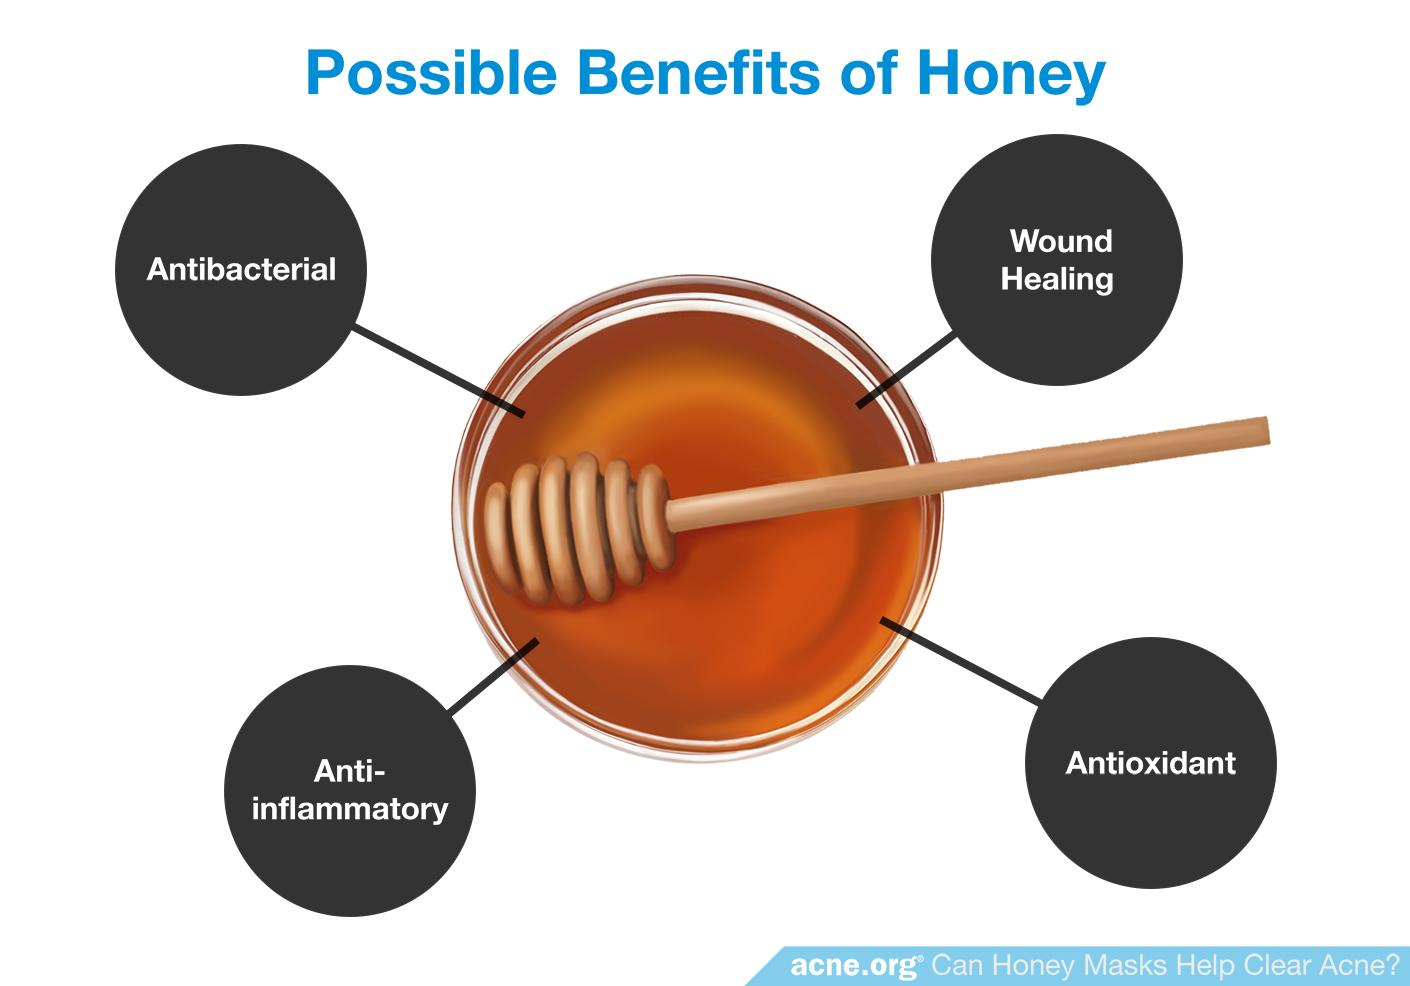 Possible Benefits of Honey